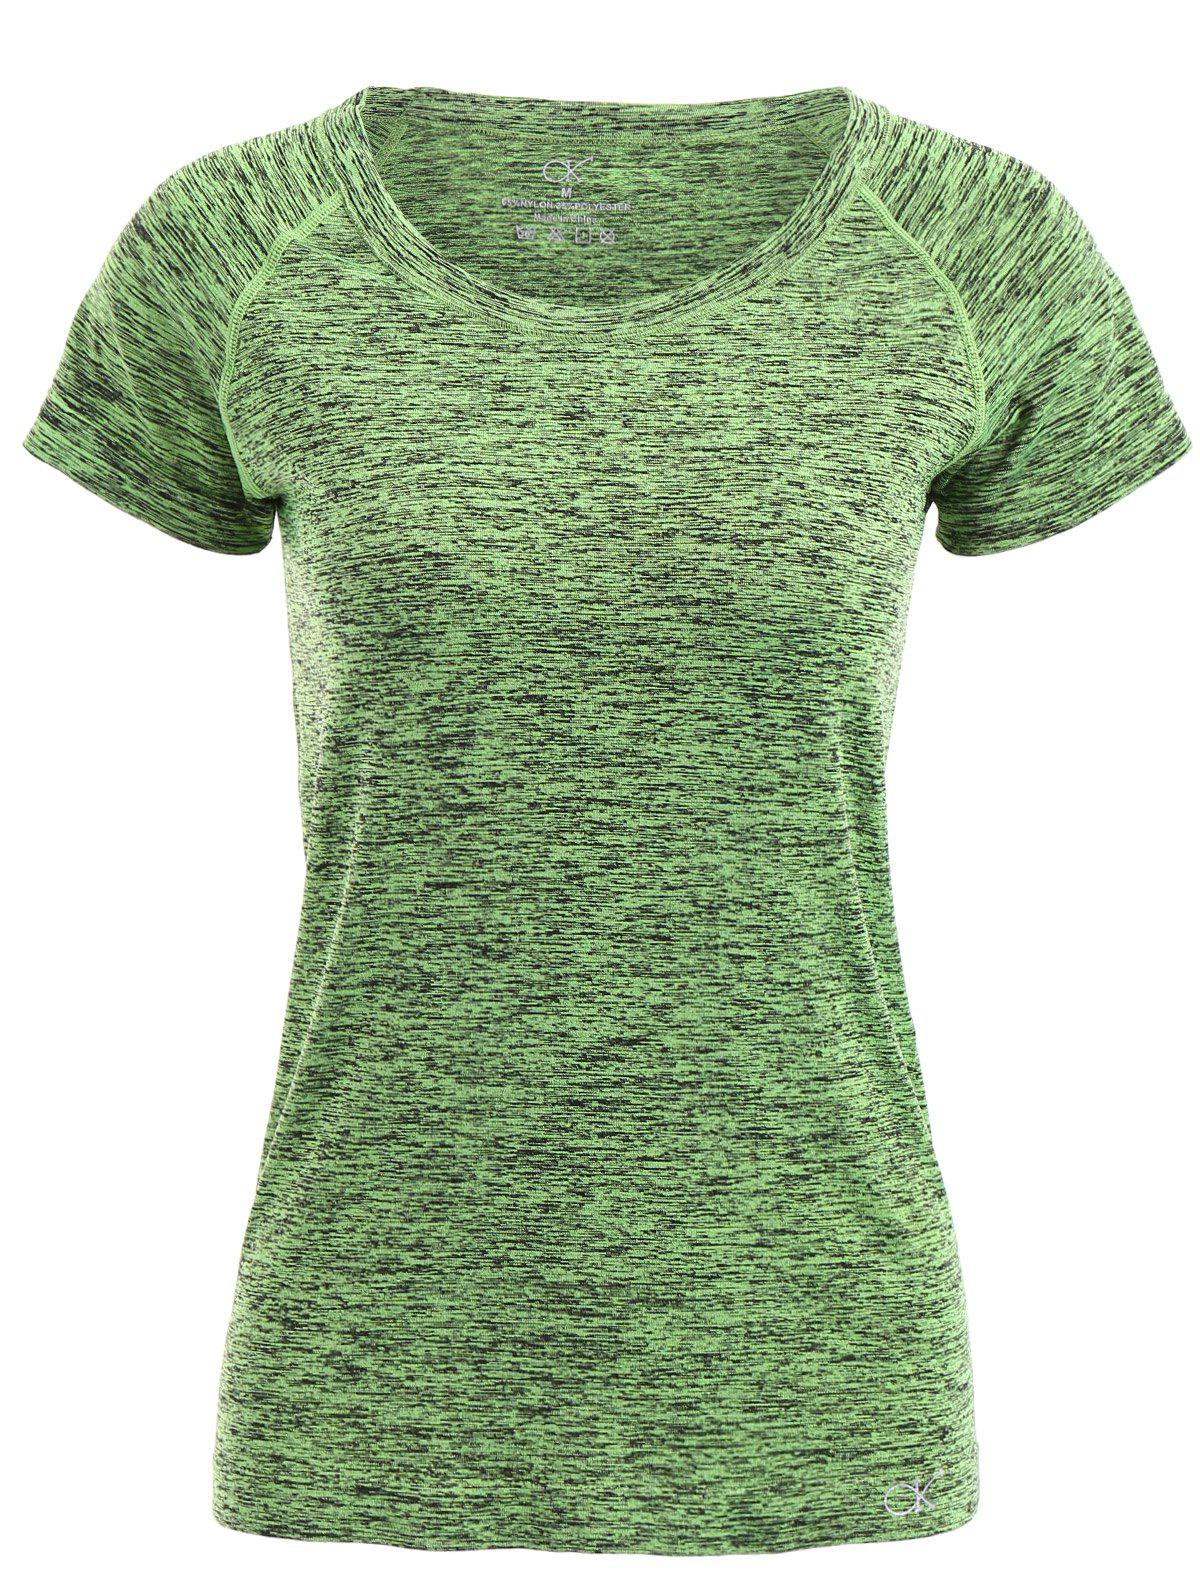 Trendy Jewel Neck Candy Color Short Sleeve Sport T-Shirt For Women - GREEN M